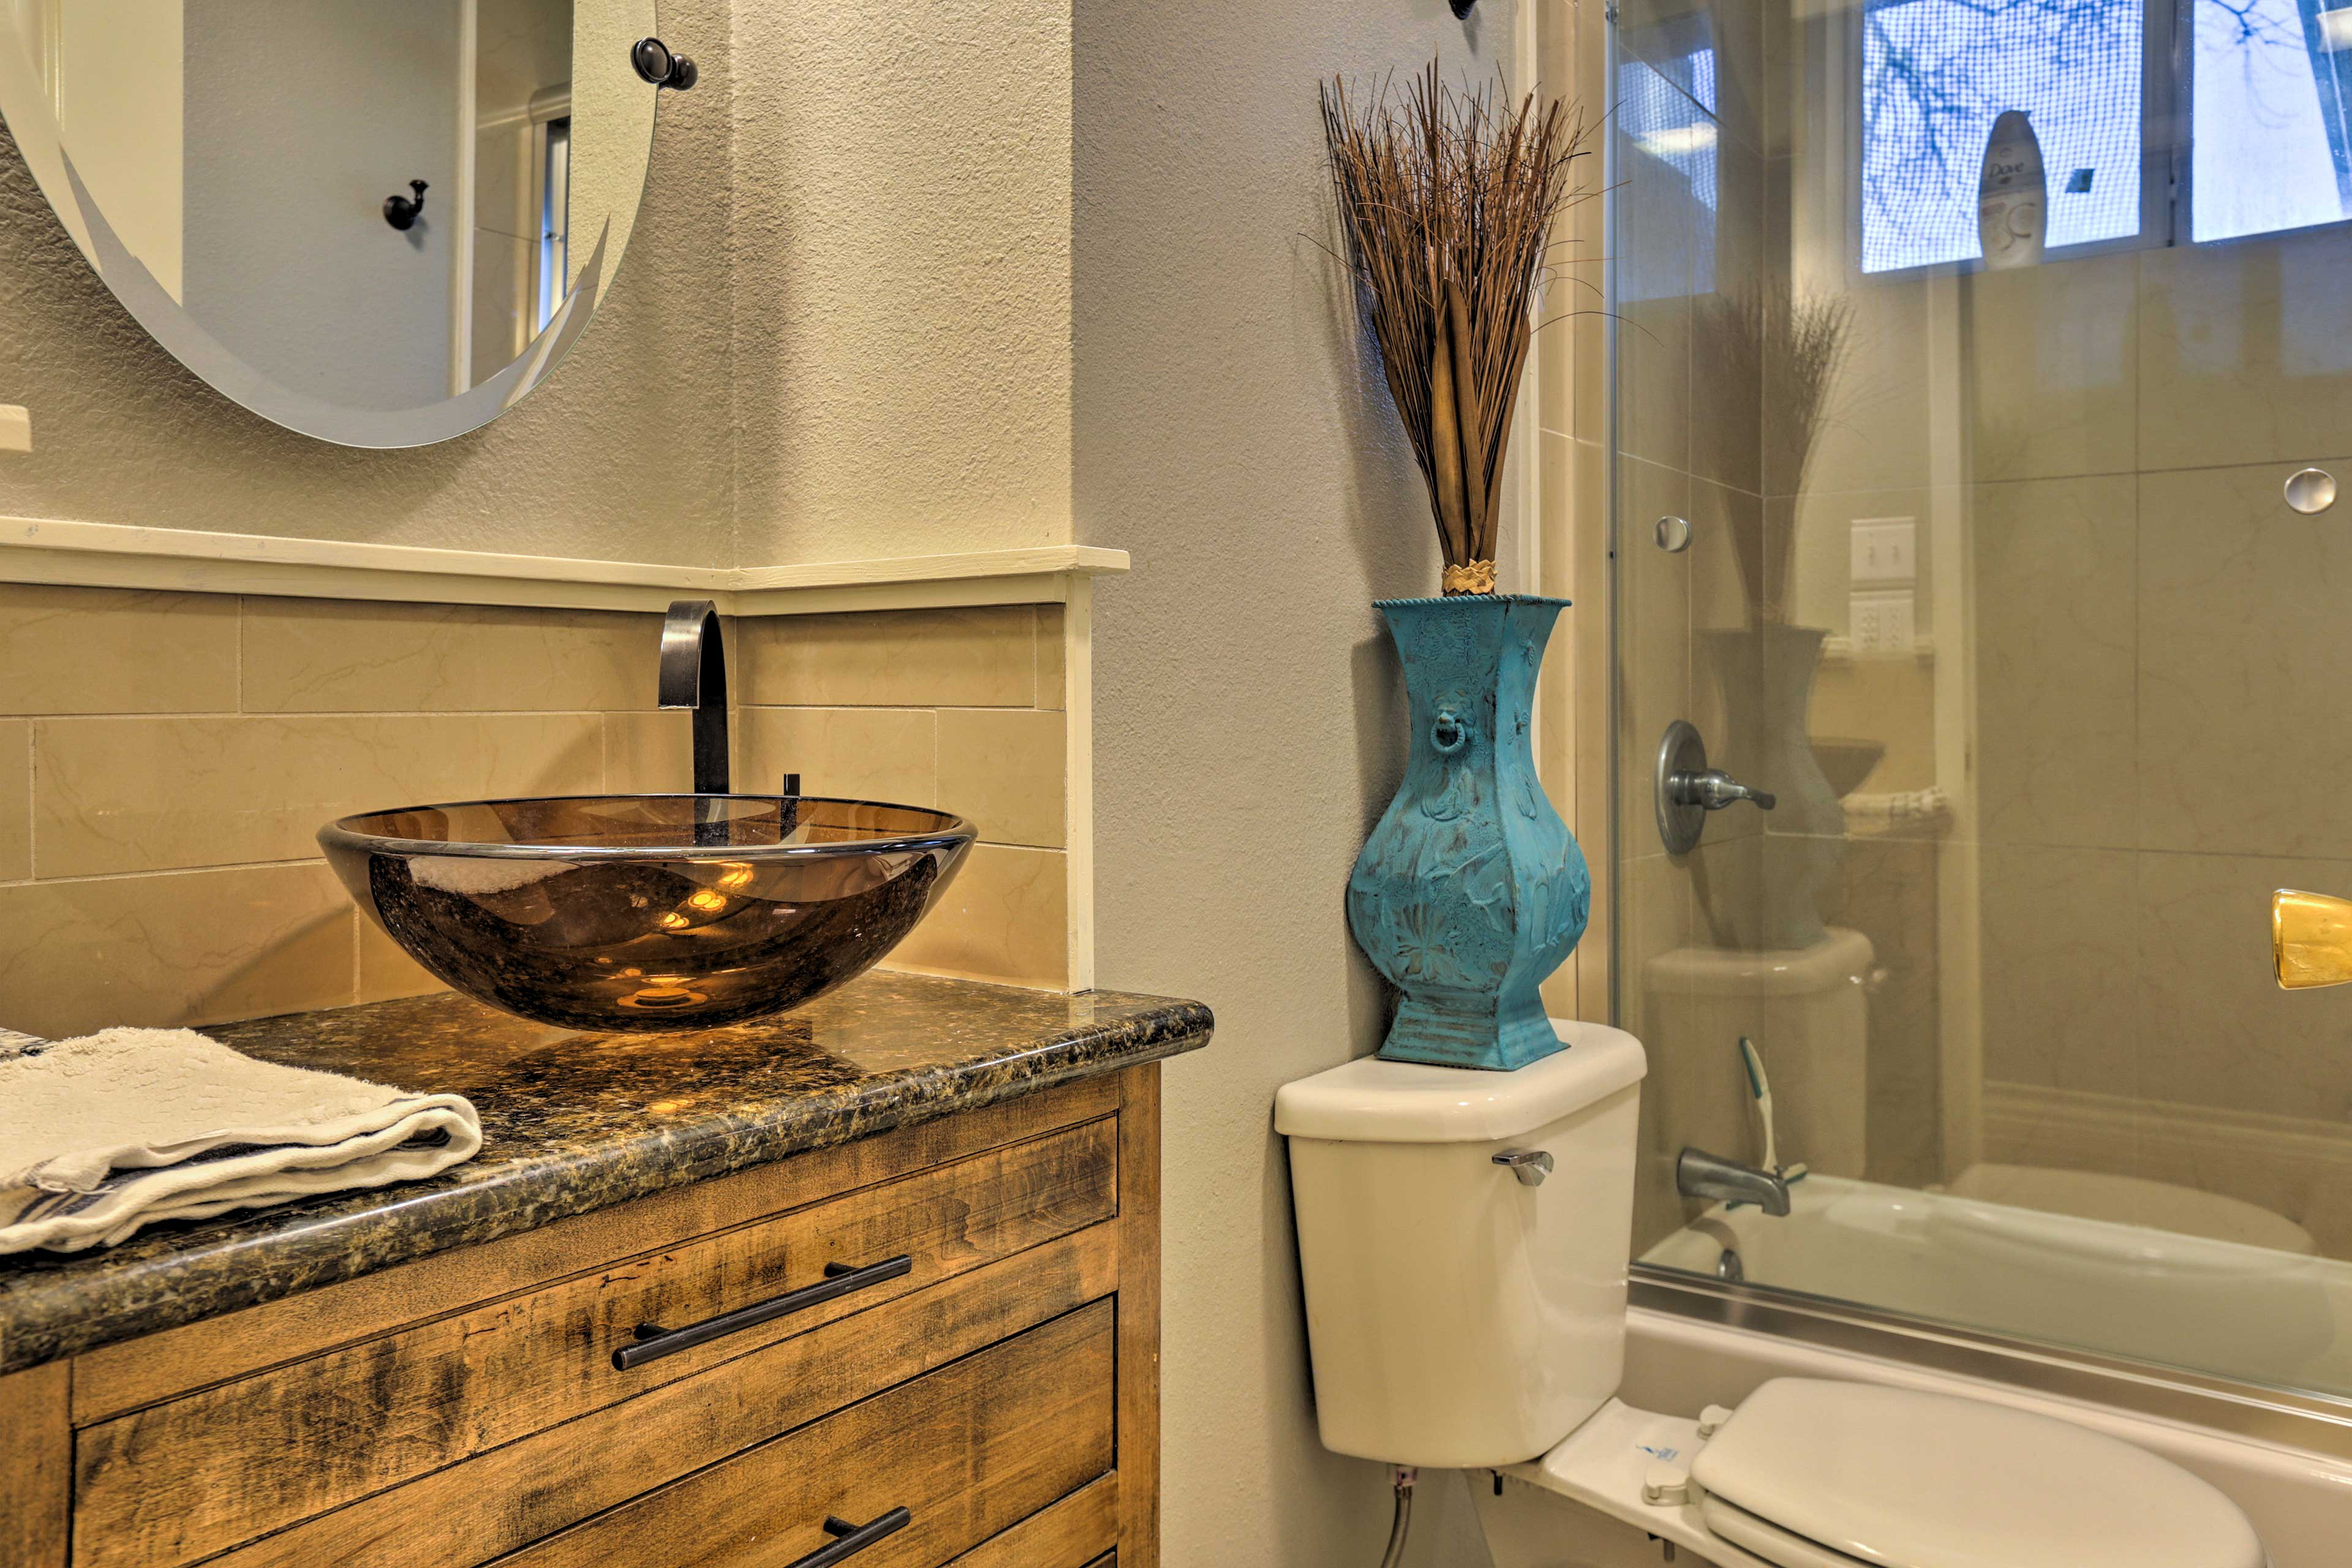 This spotless bathroom houses a vessel sink and tub/shower combo.